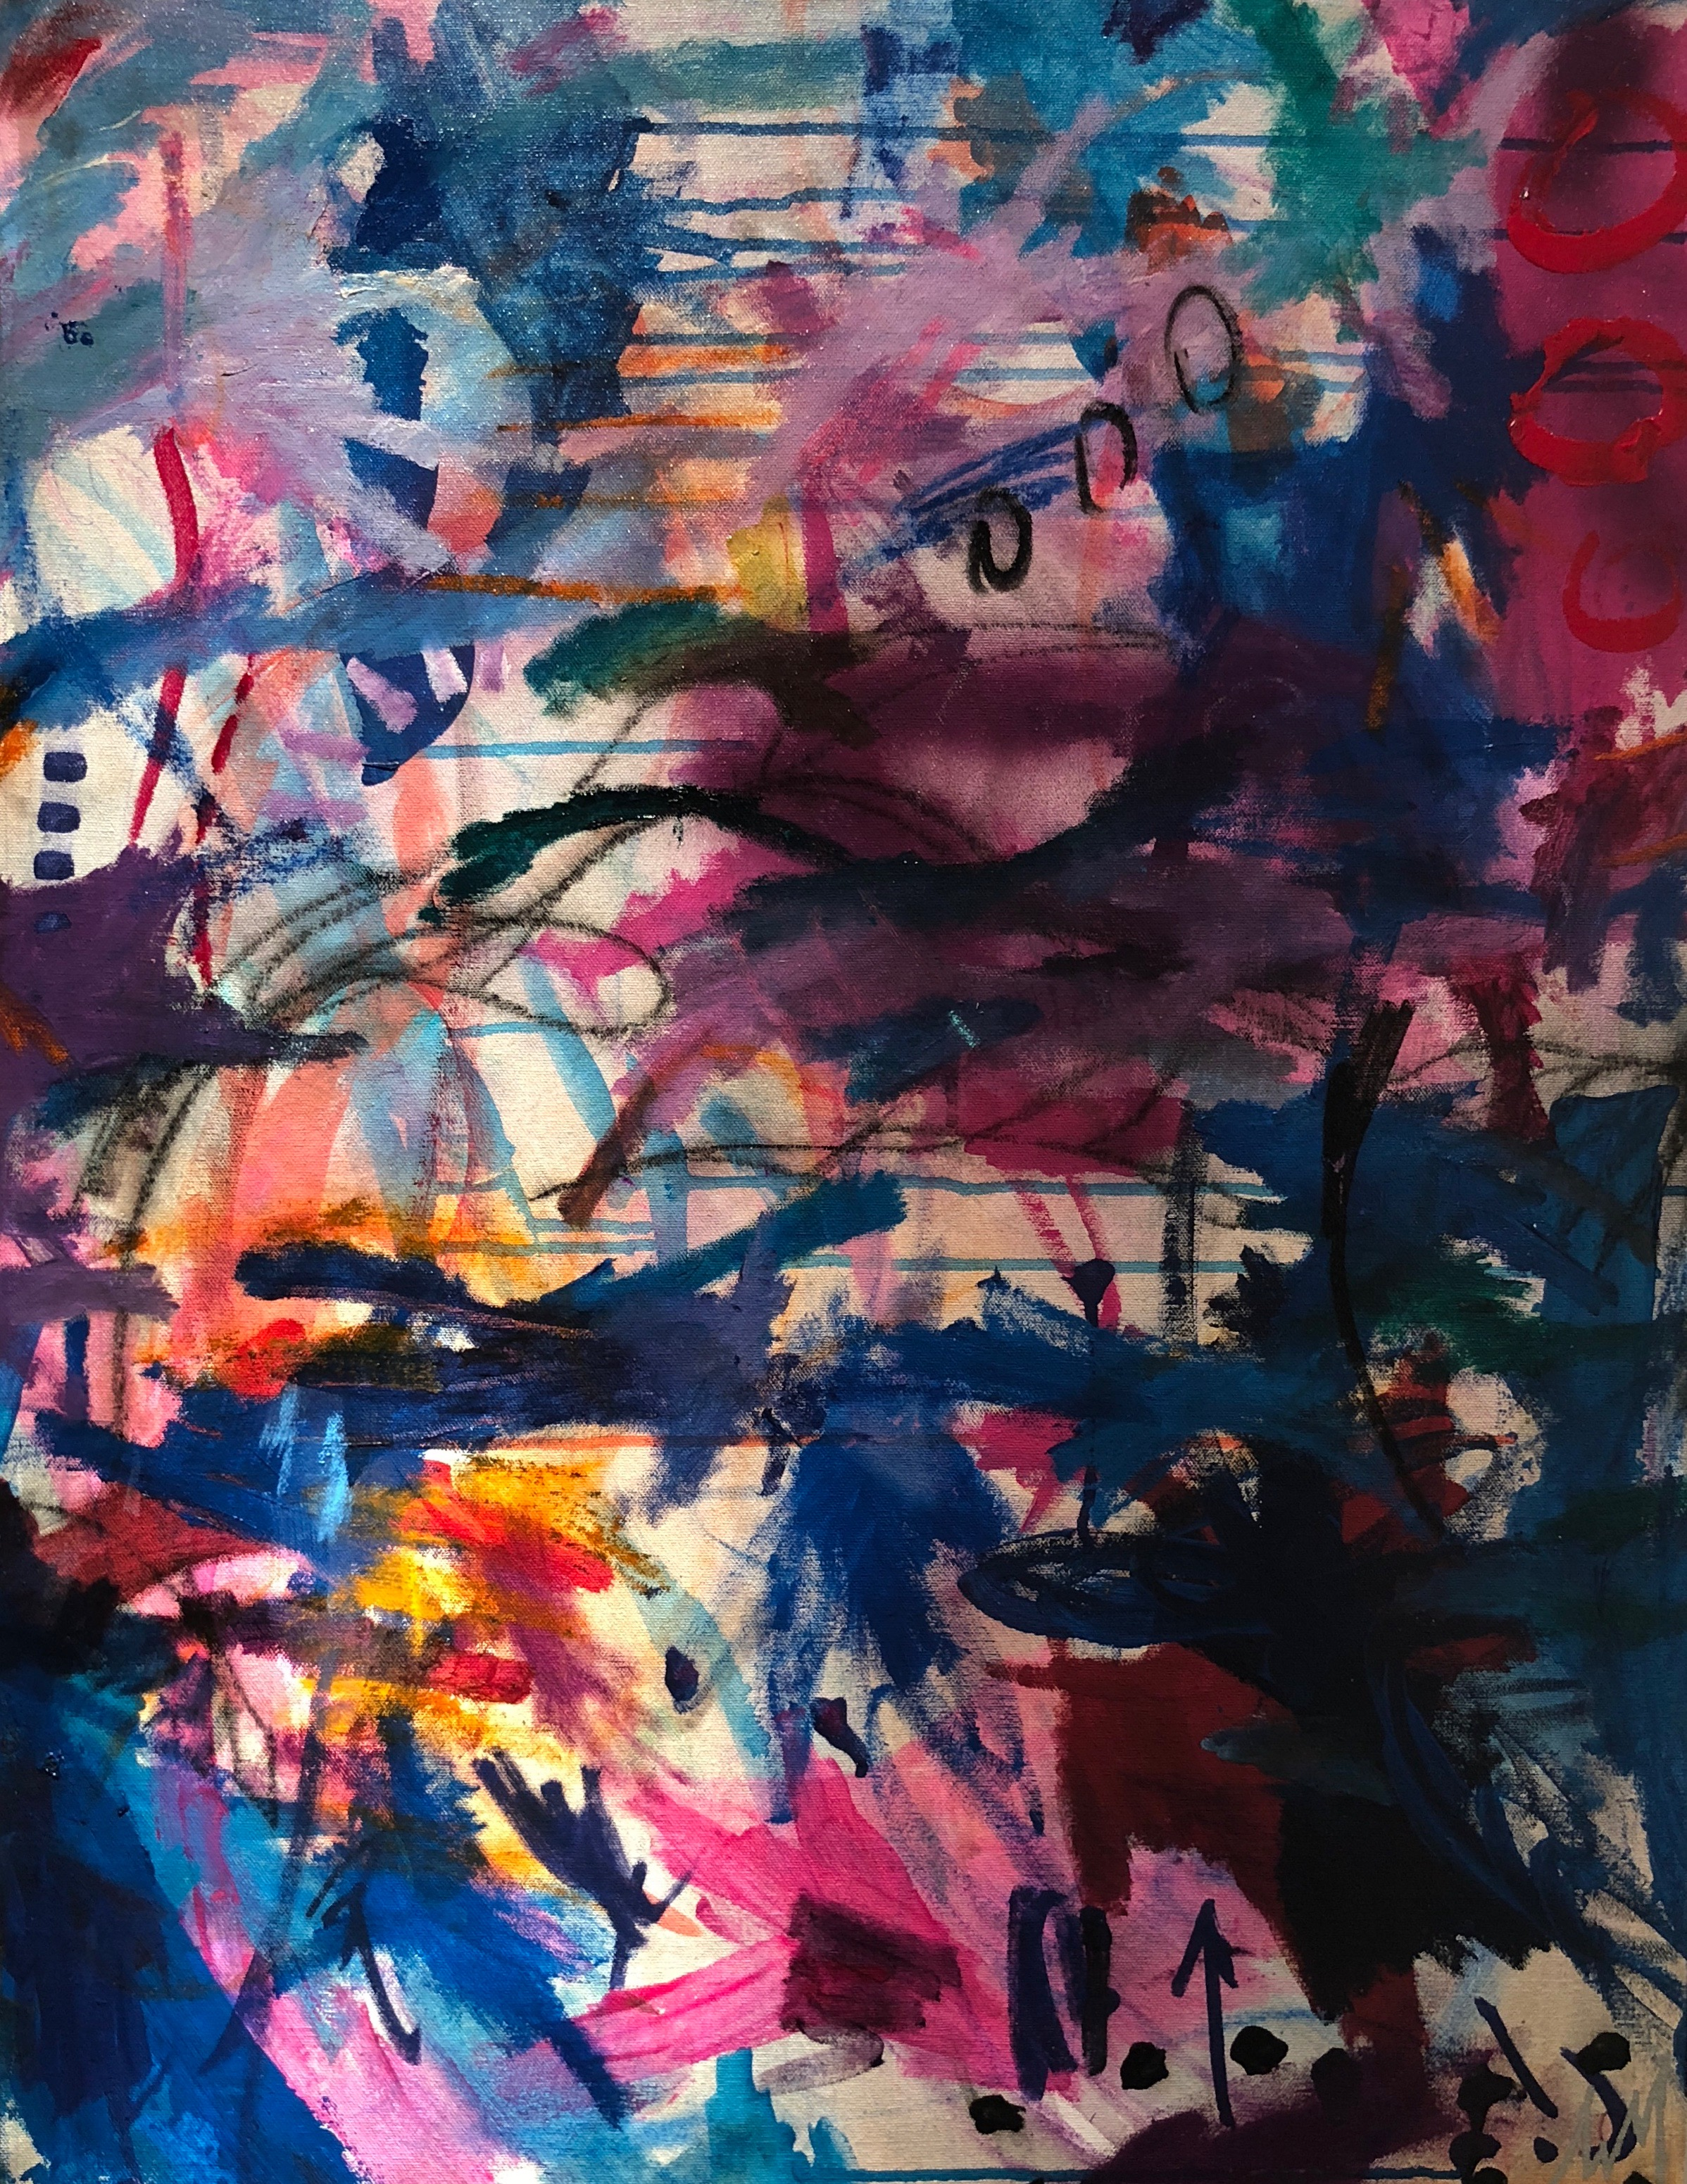 """Kismet - """"Kismet"""" is AVM's free spirited exploration into her inner world through experimentation with oil, oil pastels, along with acrylic paint. AVM allowed herself to 'let go' boldly and unapologetically in divine synchronicity."""